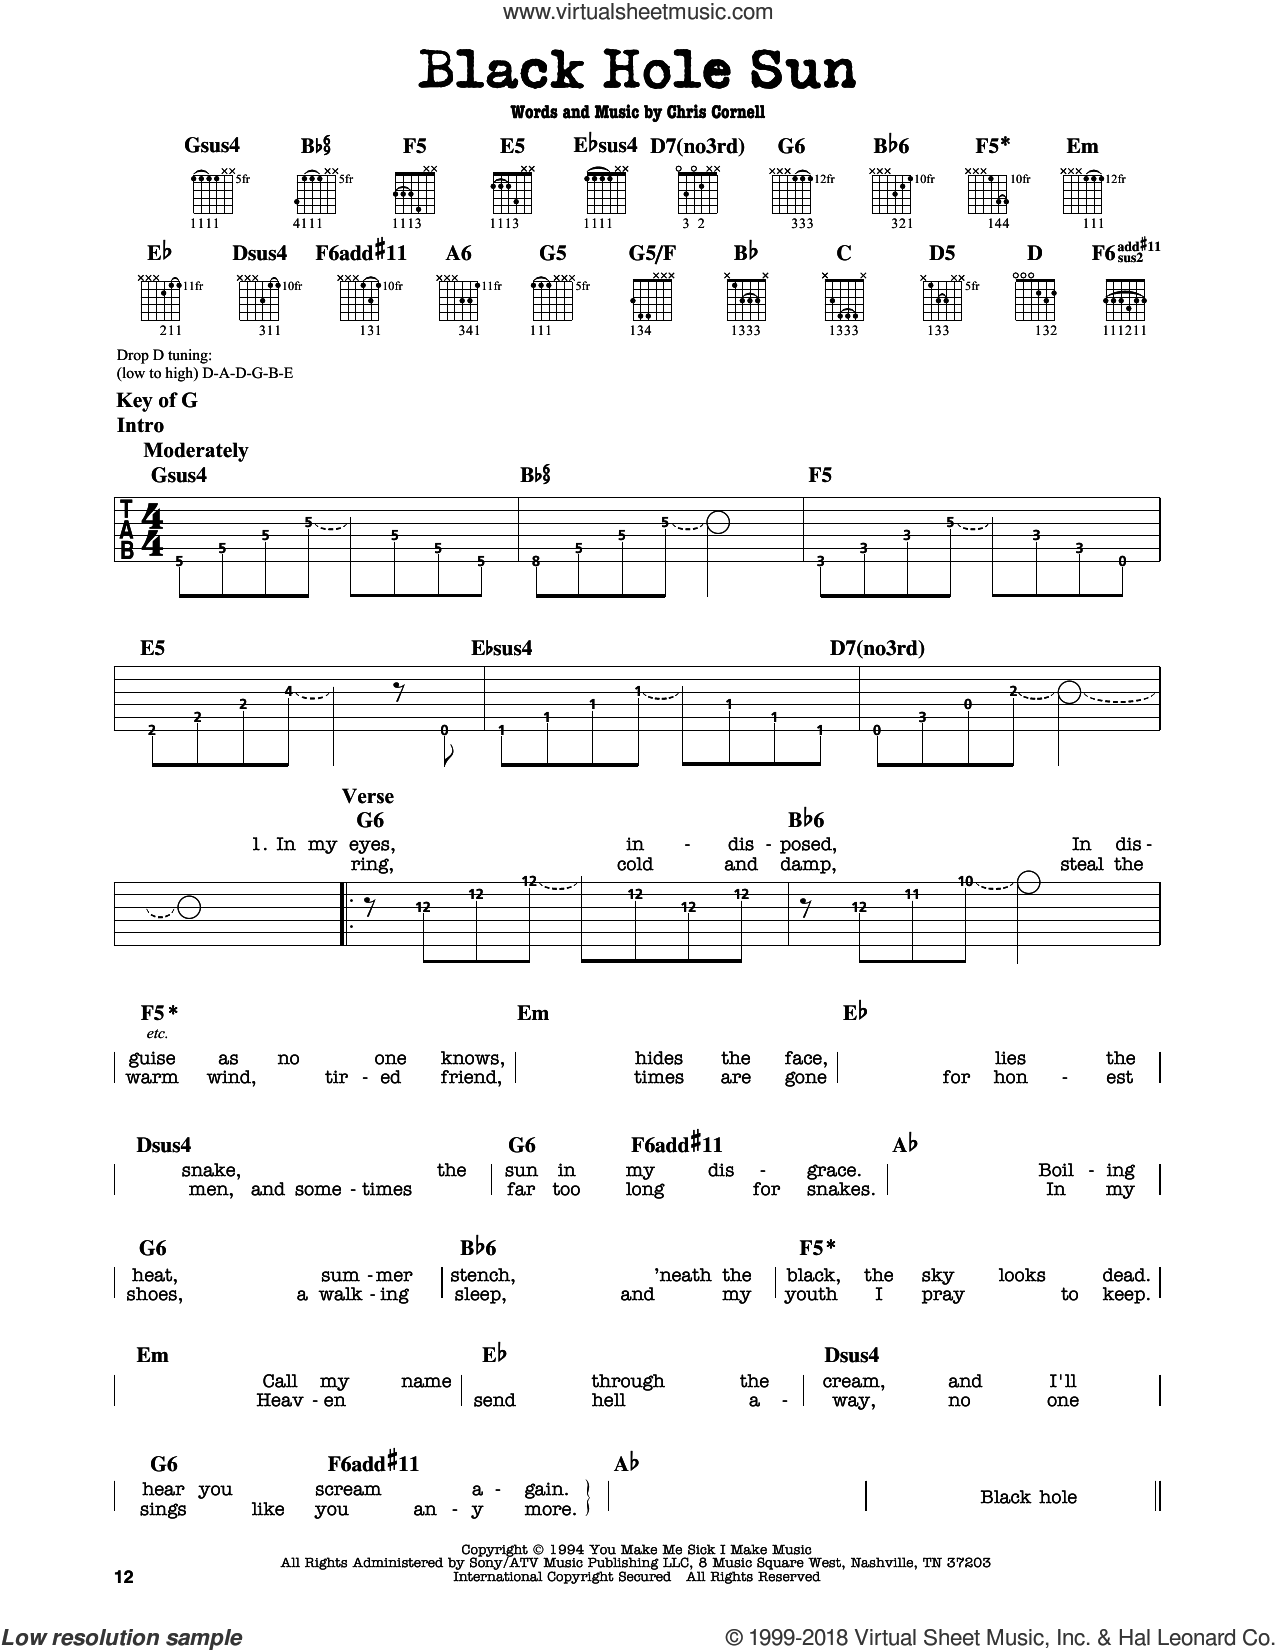 Black Hole Sun sheet music for guitar solo (lead sheet) by Soundgarden and Chris Cornell, intermediate guitar (lead sheet). Score Image Preview.